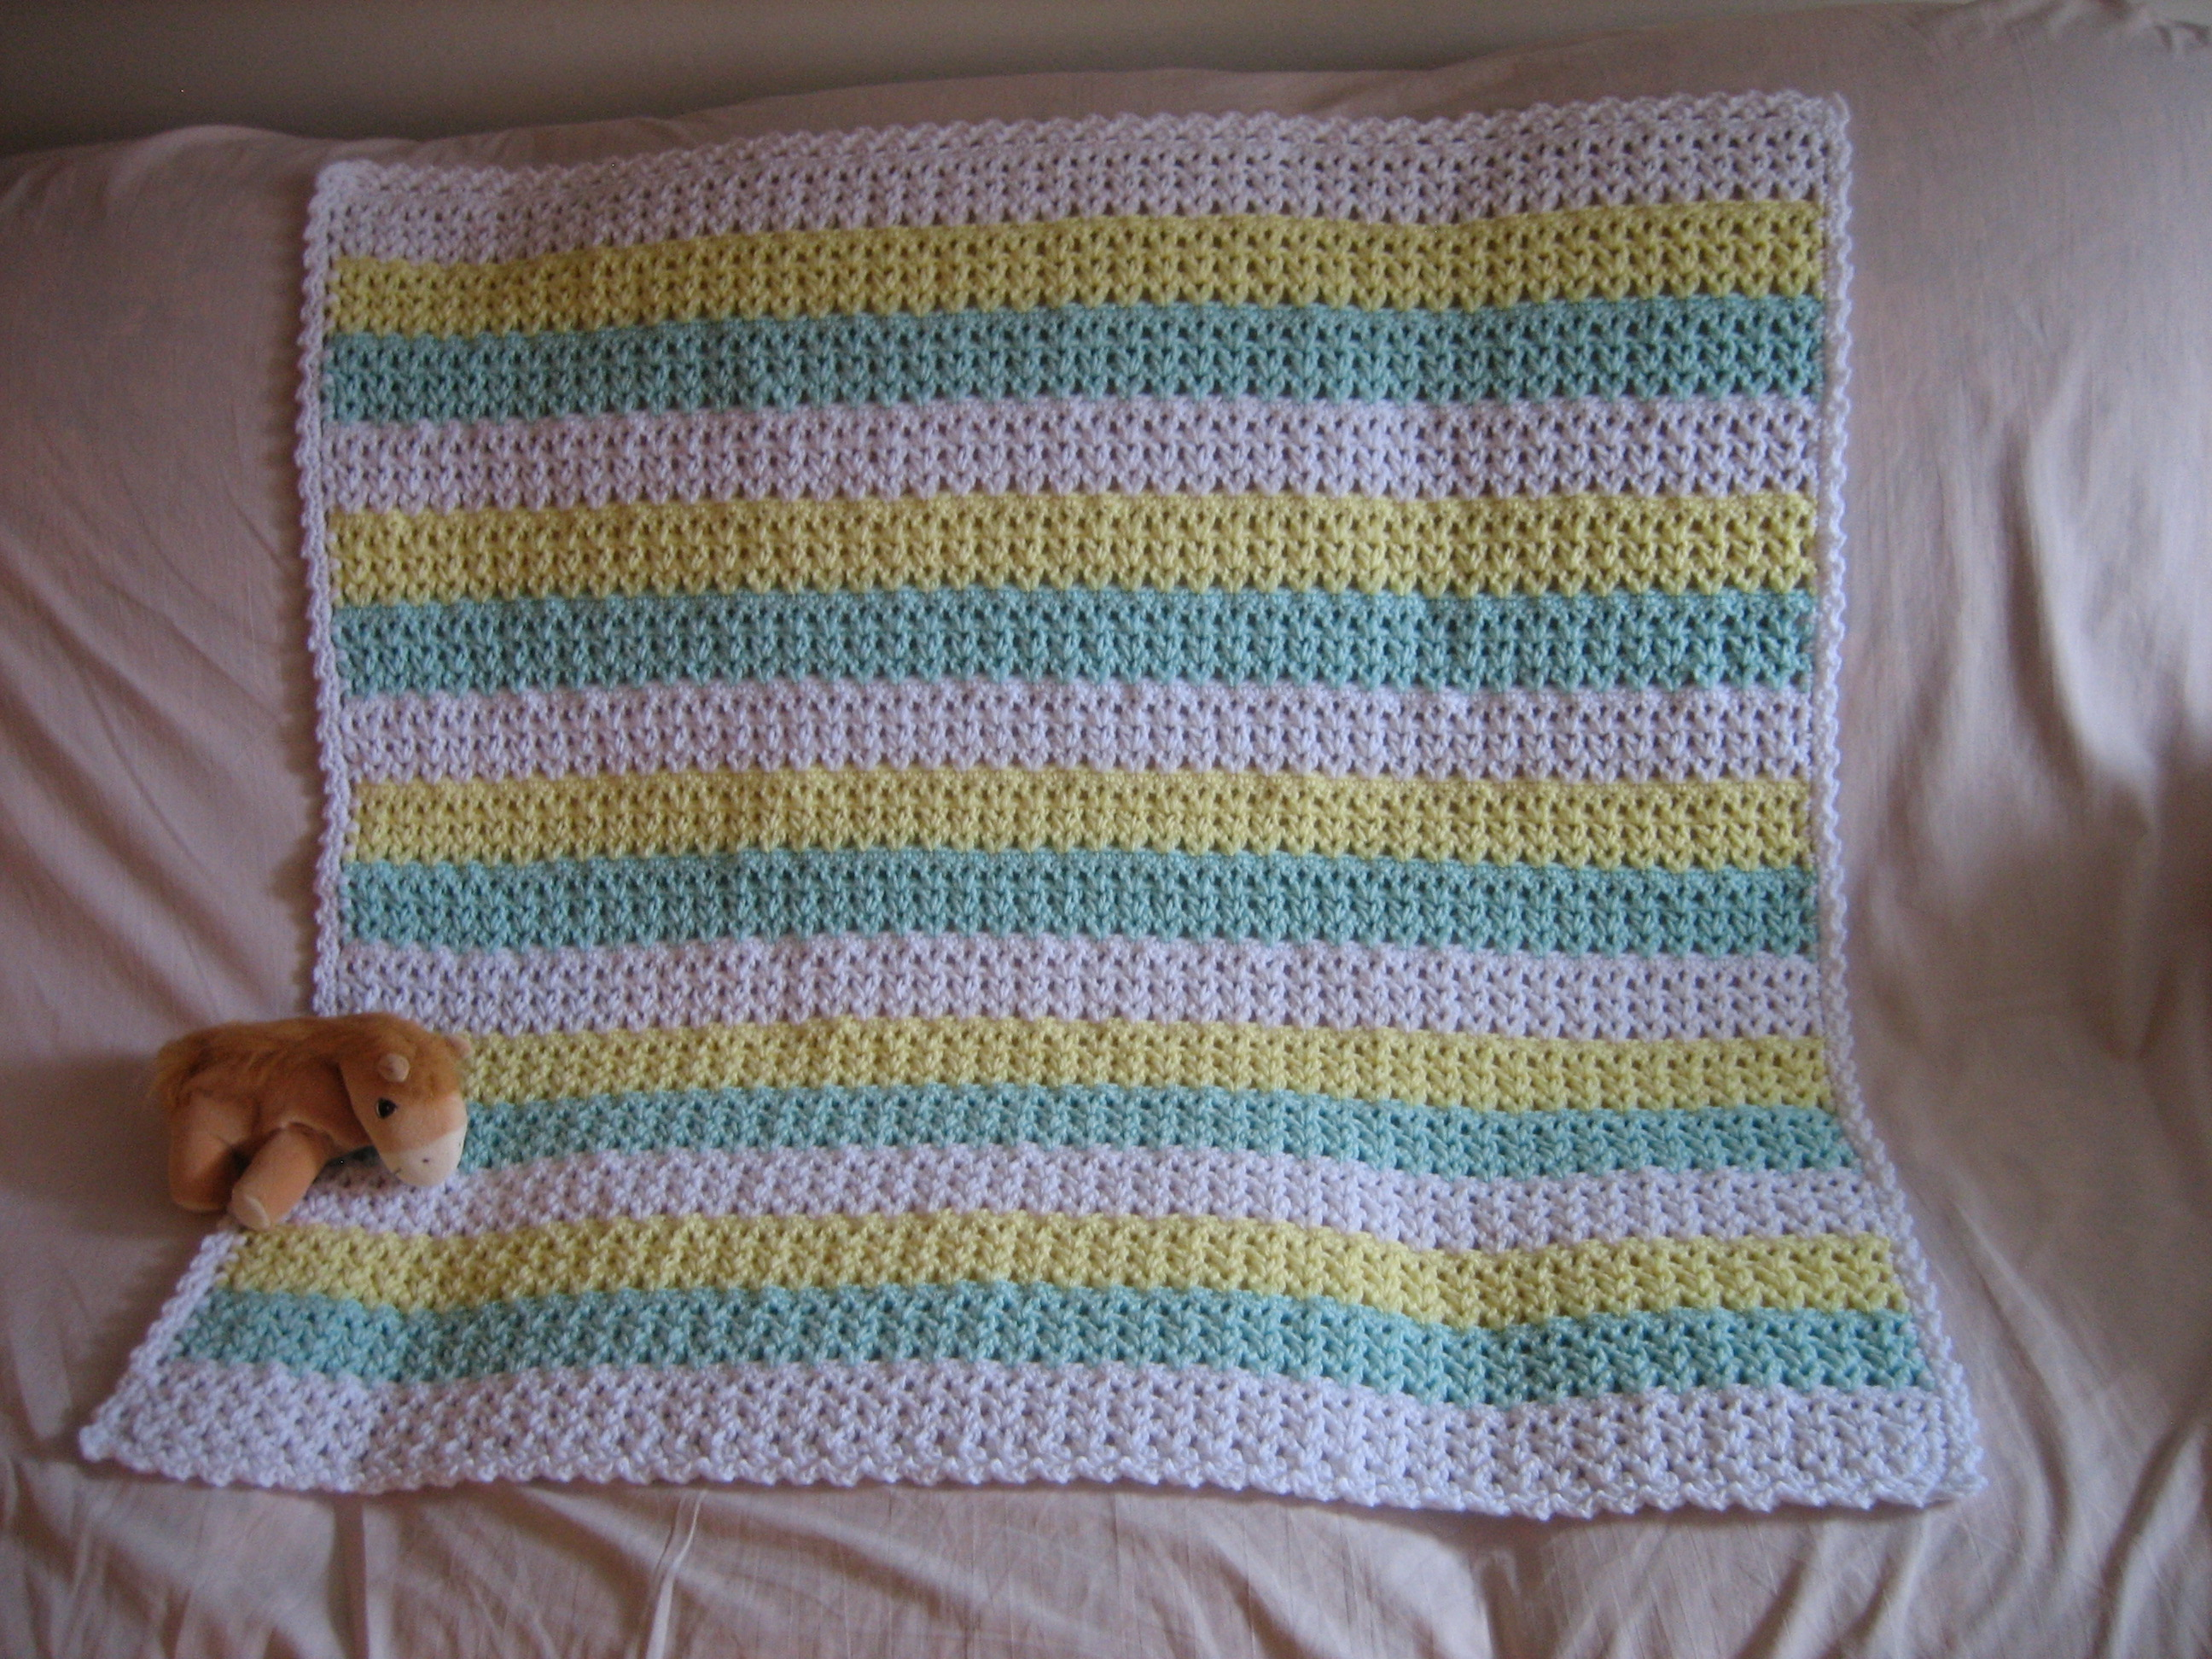 Charming baby blanket crochet patterns for beginners and experts